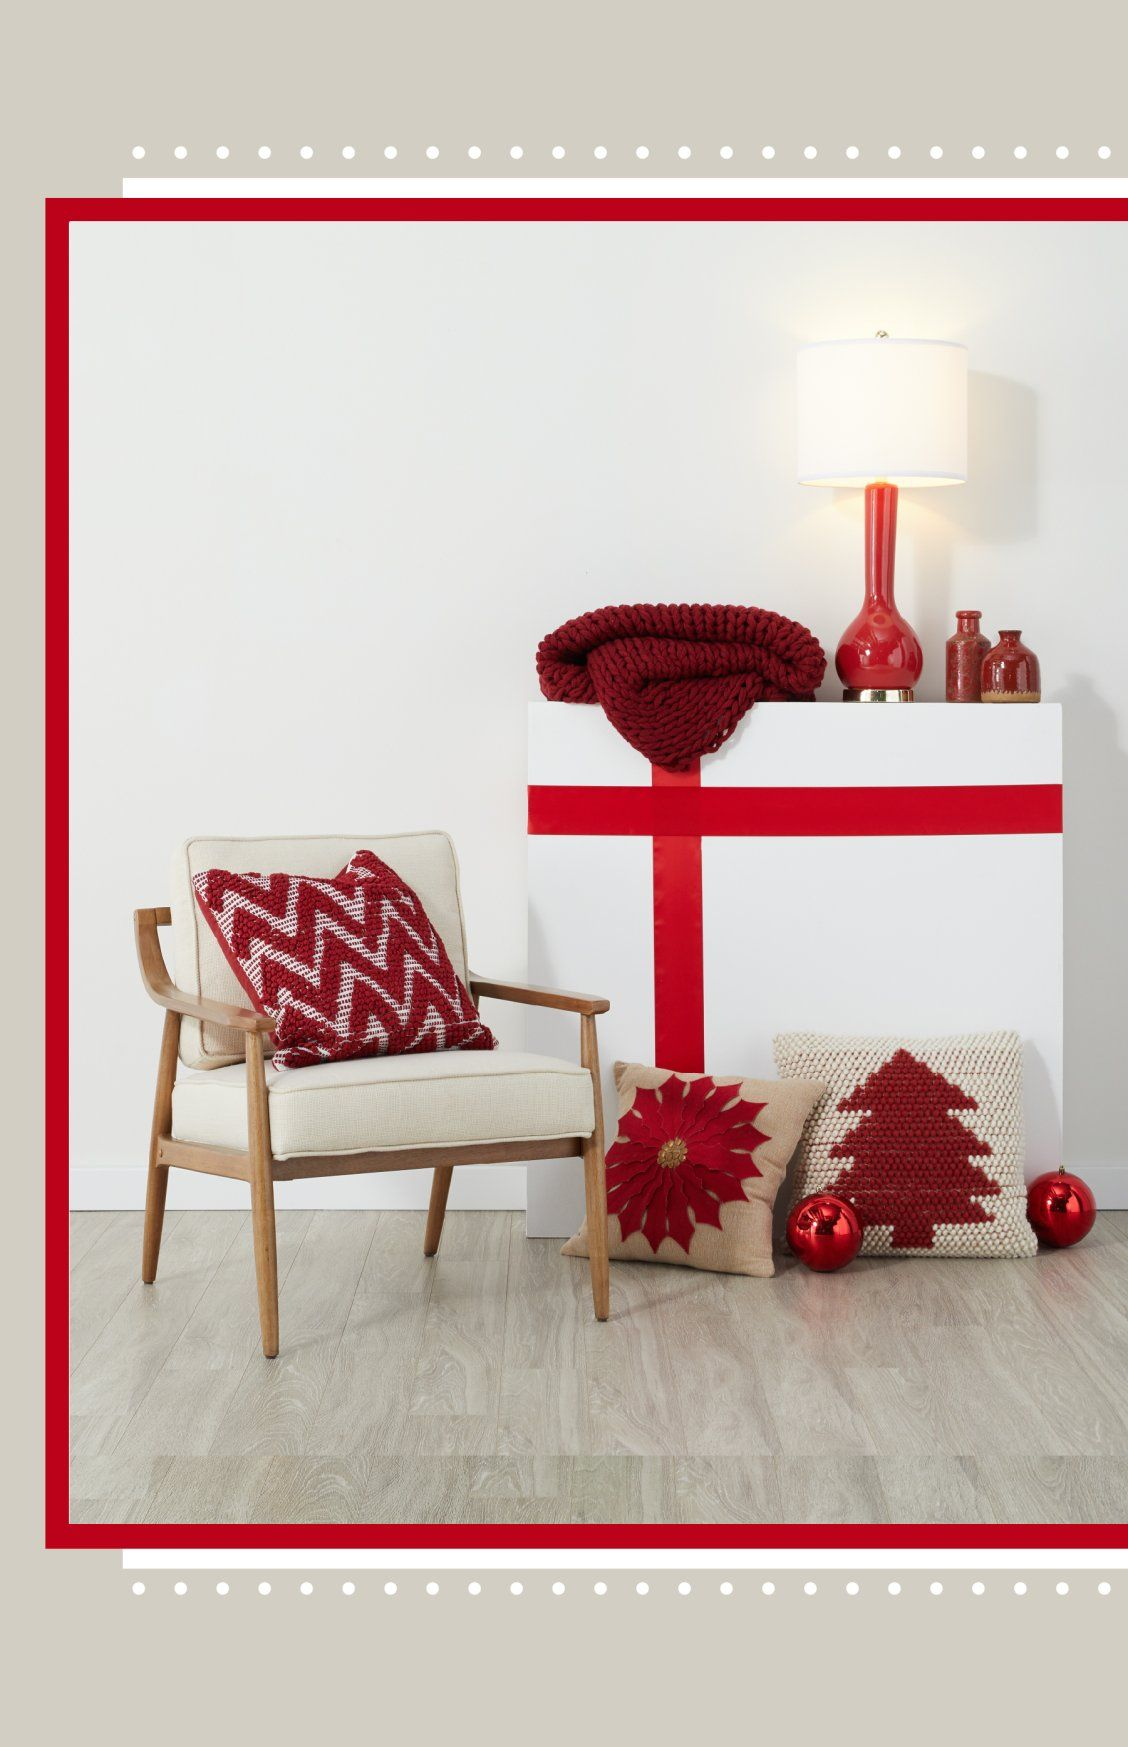 At Overstock, you'll find a wide assortment of stylish ...